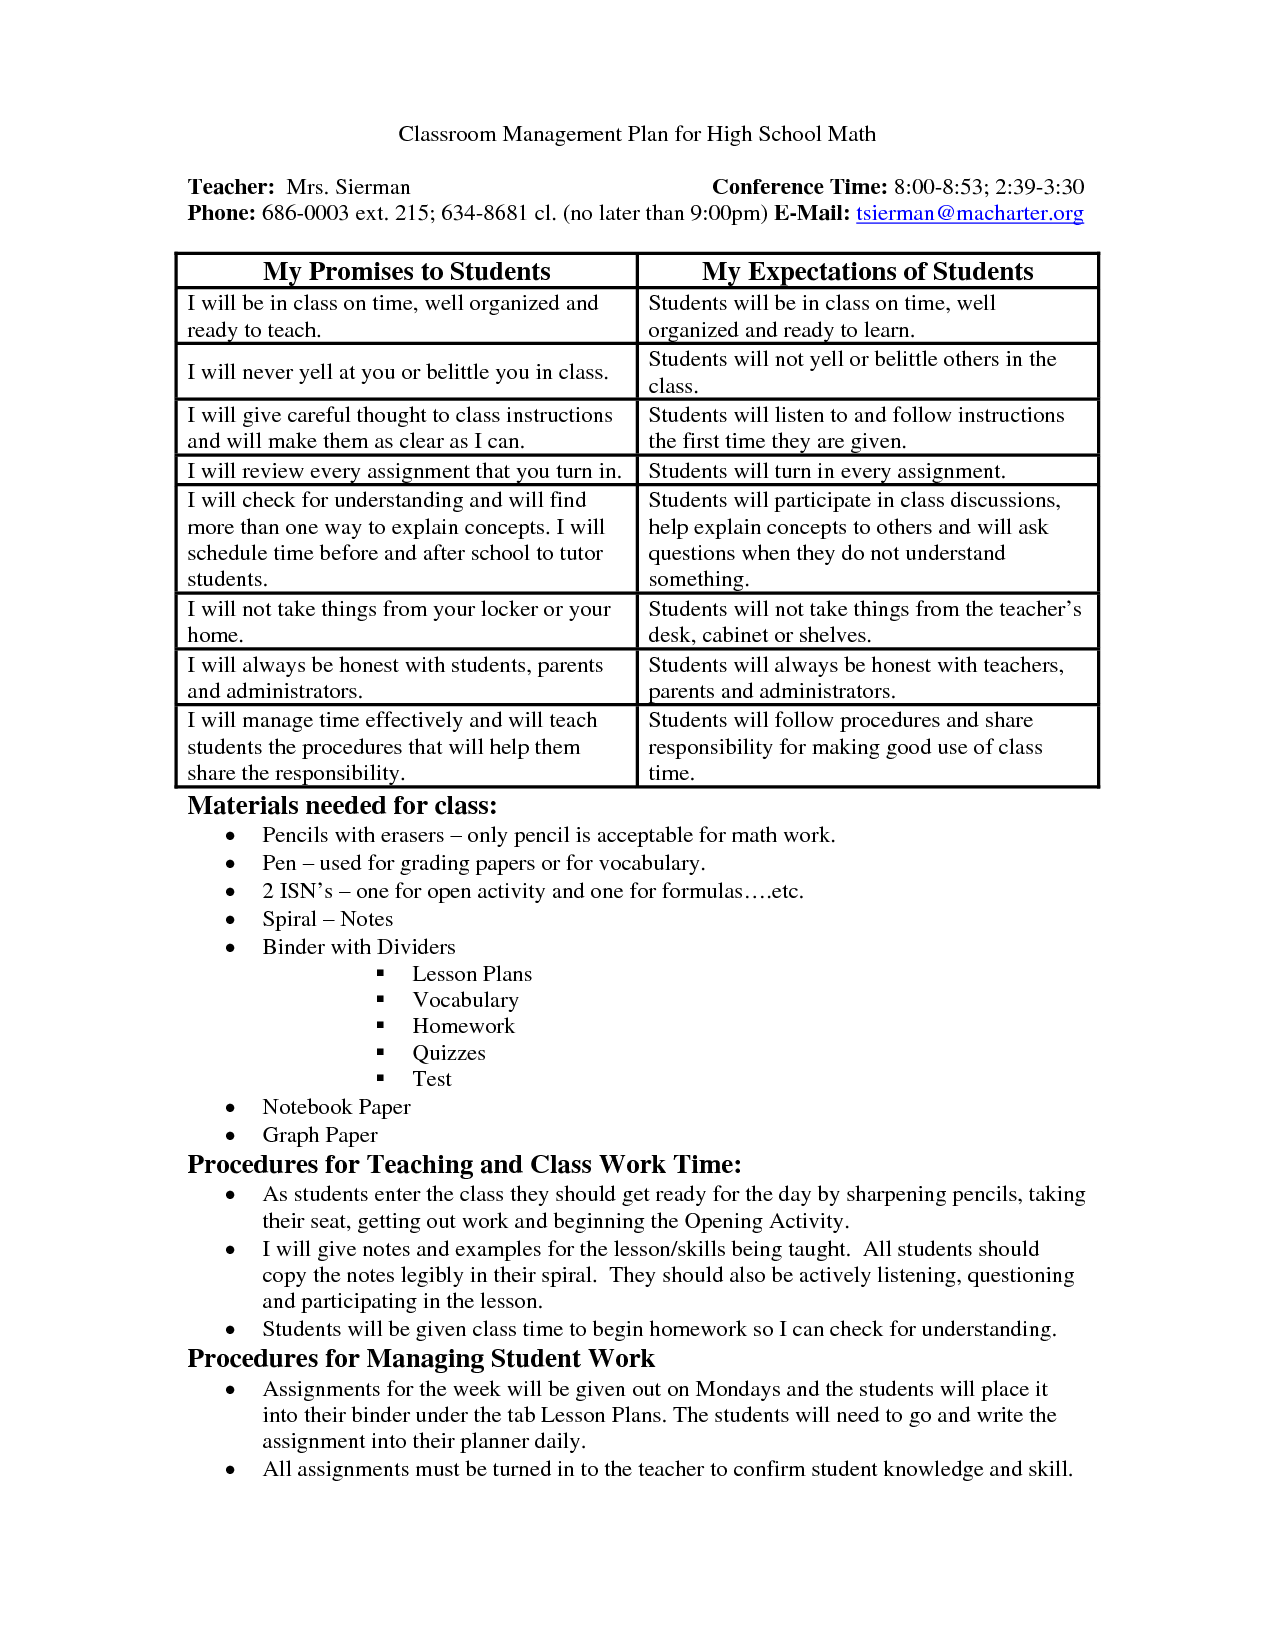 essay on behaviour management Behavior management essay this essay was written this past semester similar to the bullying essay, it may be helpful, but the bibliography has some great resources.